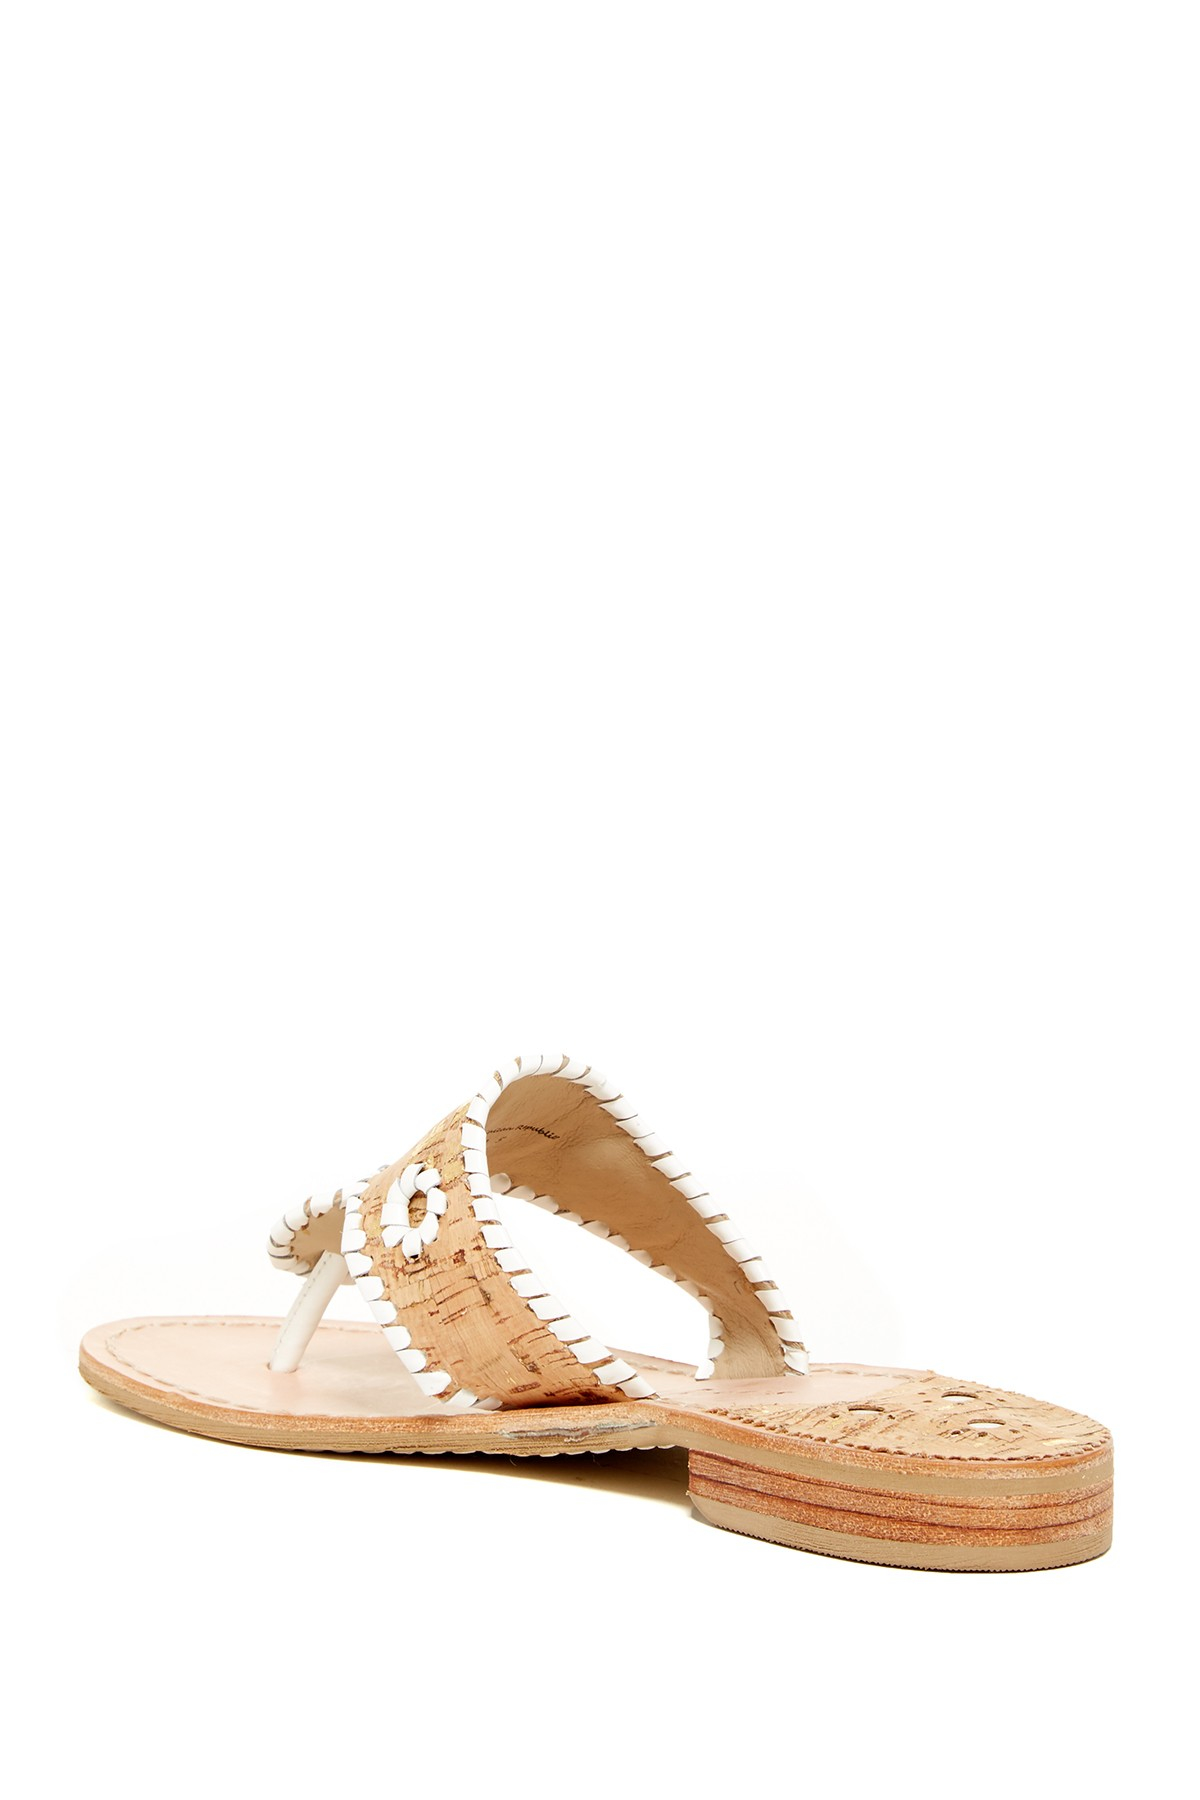 lyst jack rogers napa valley sandal in white  gucci house slippers